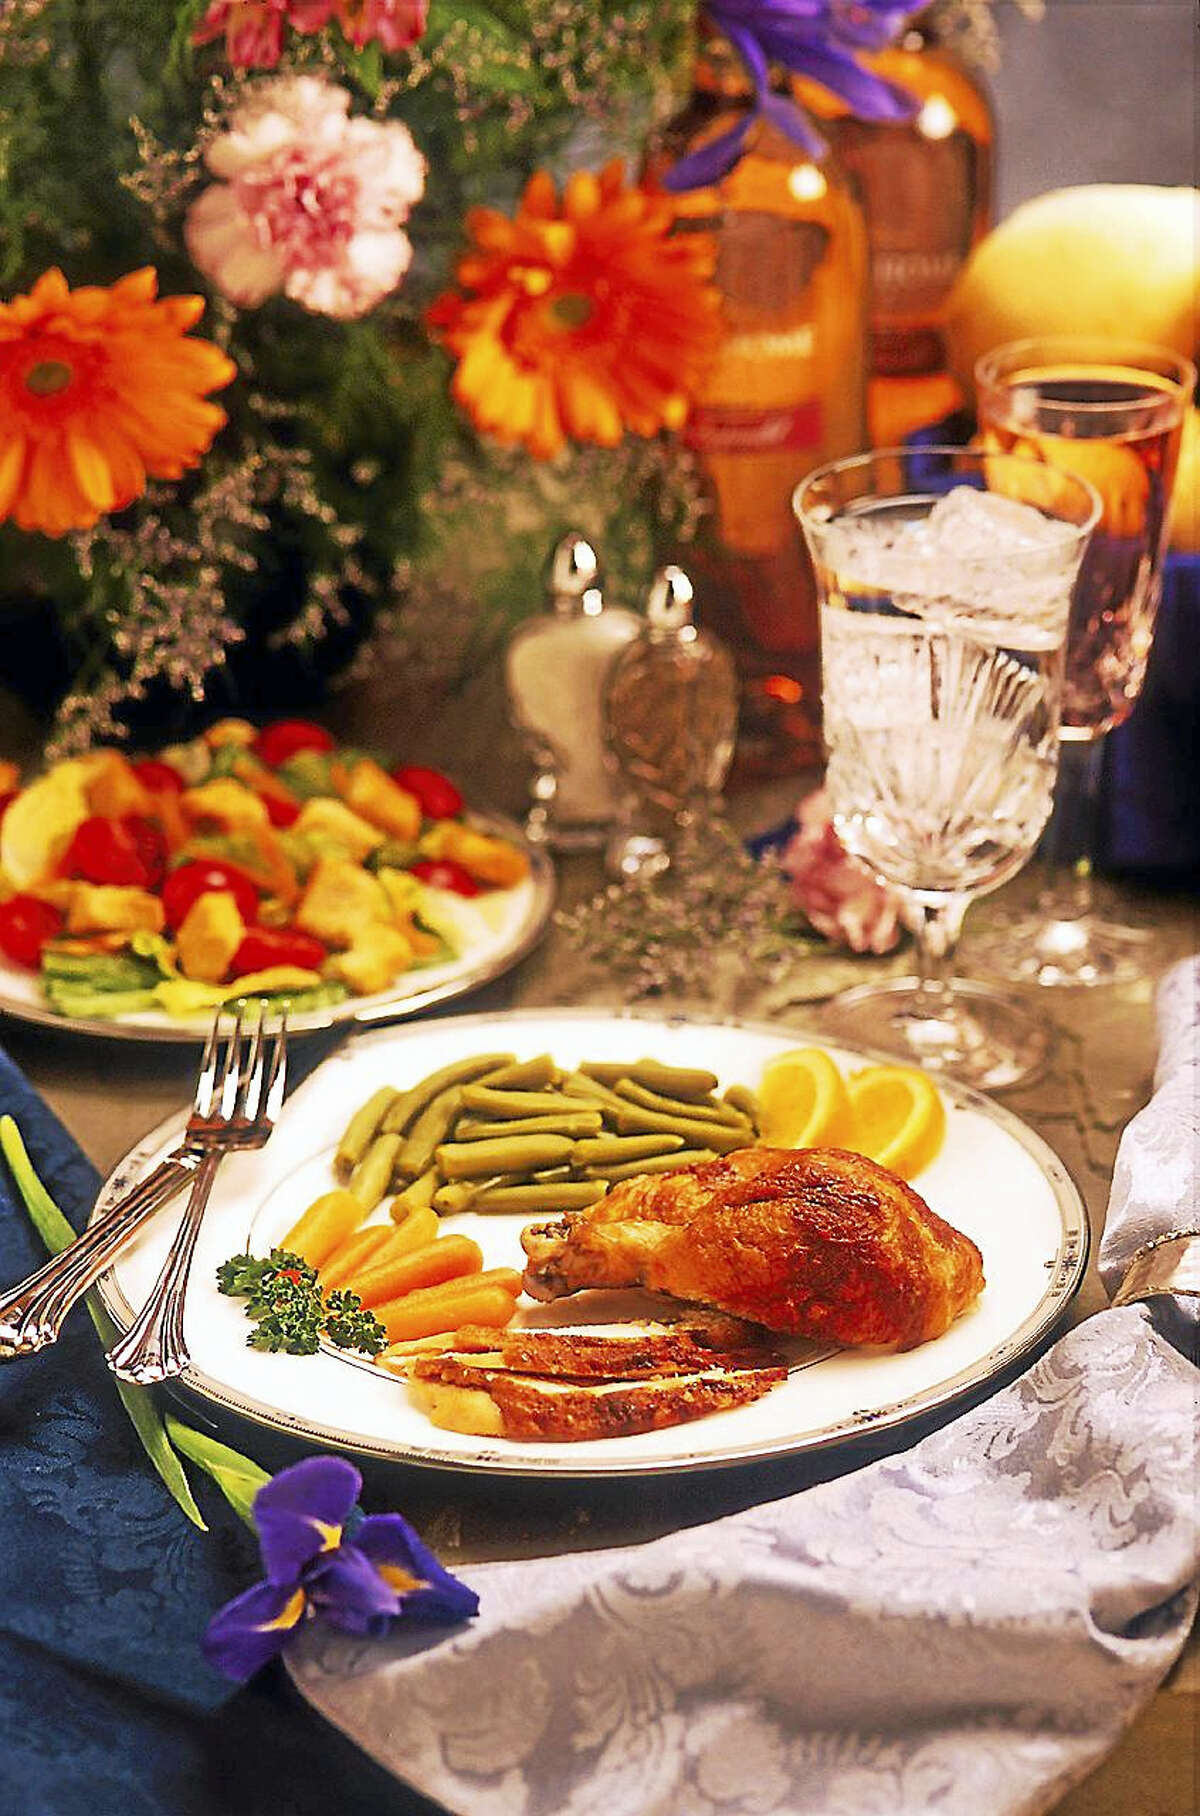 A plate set for Thanksgiving